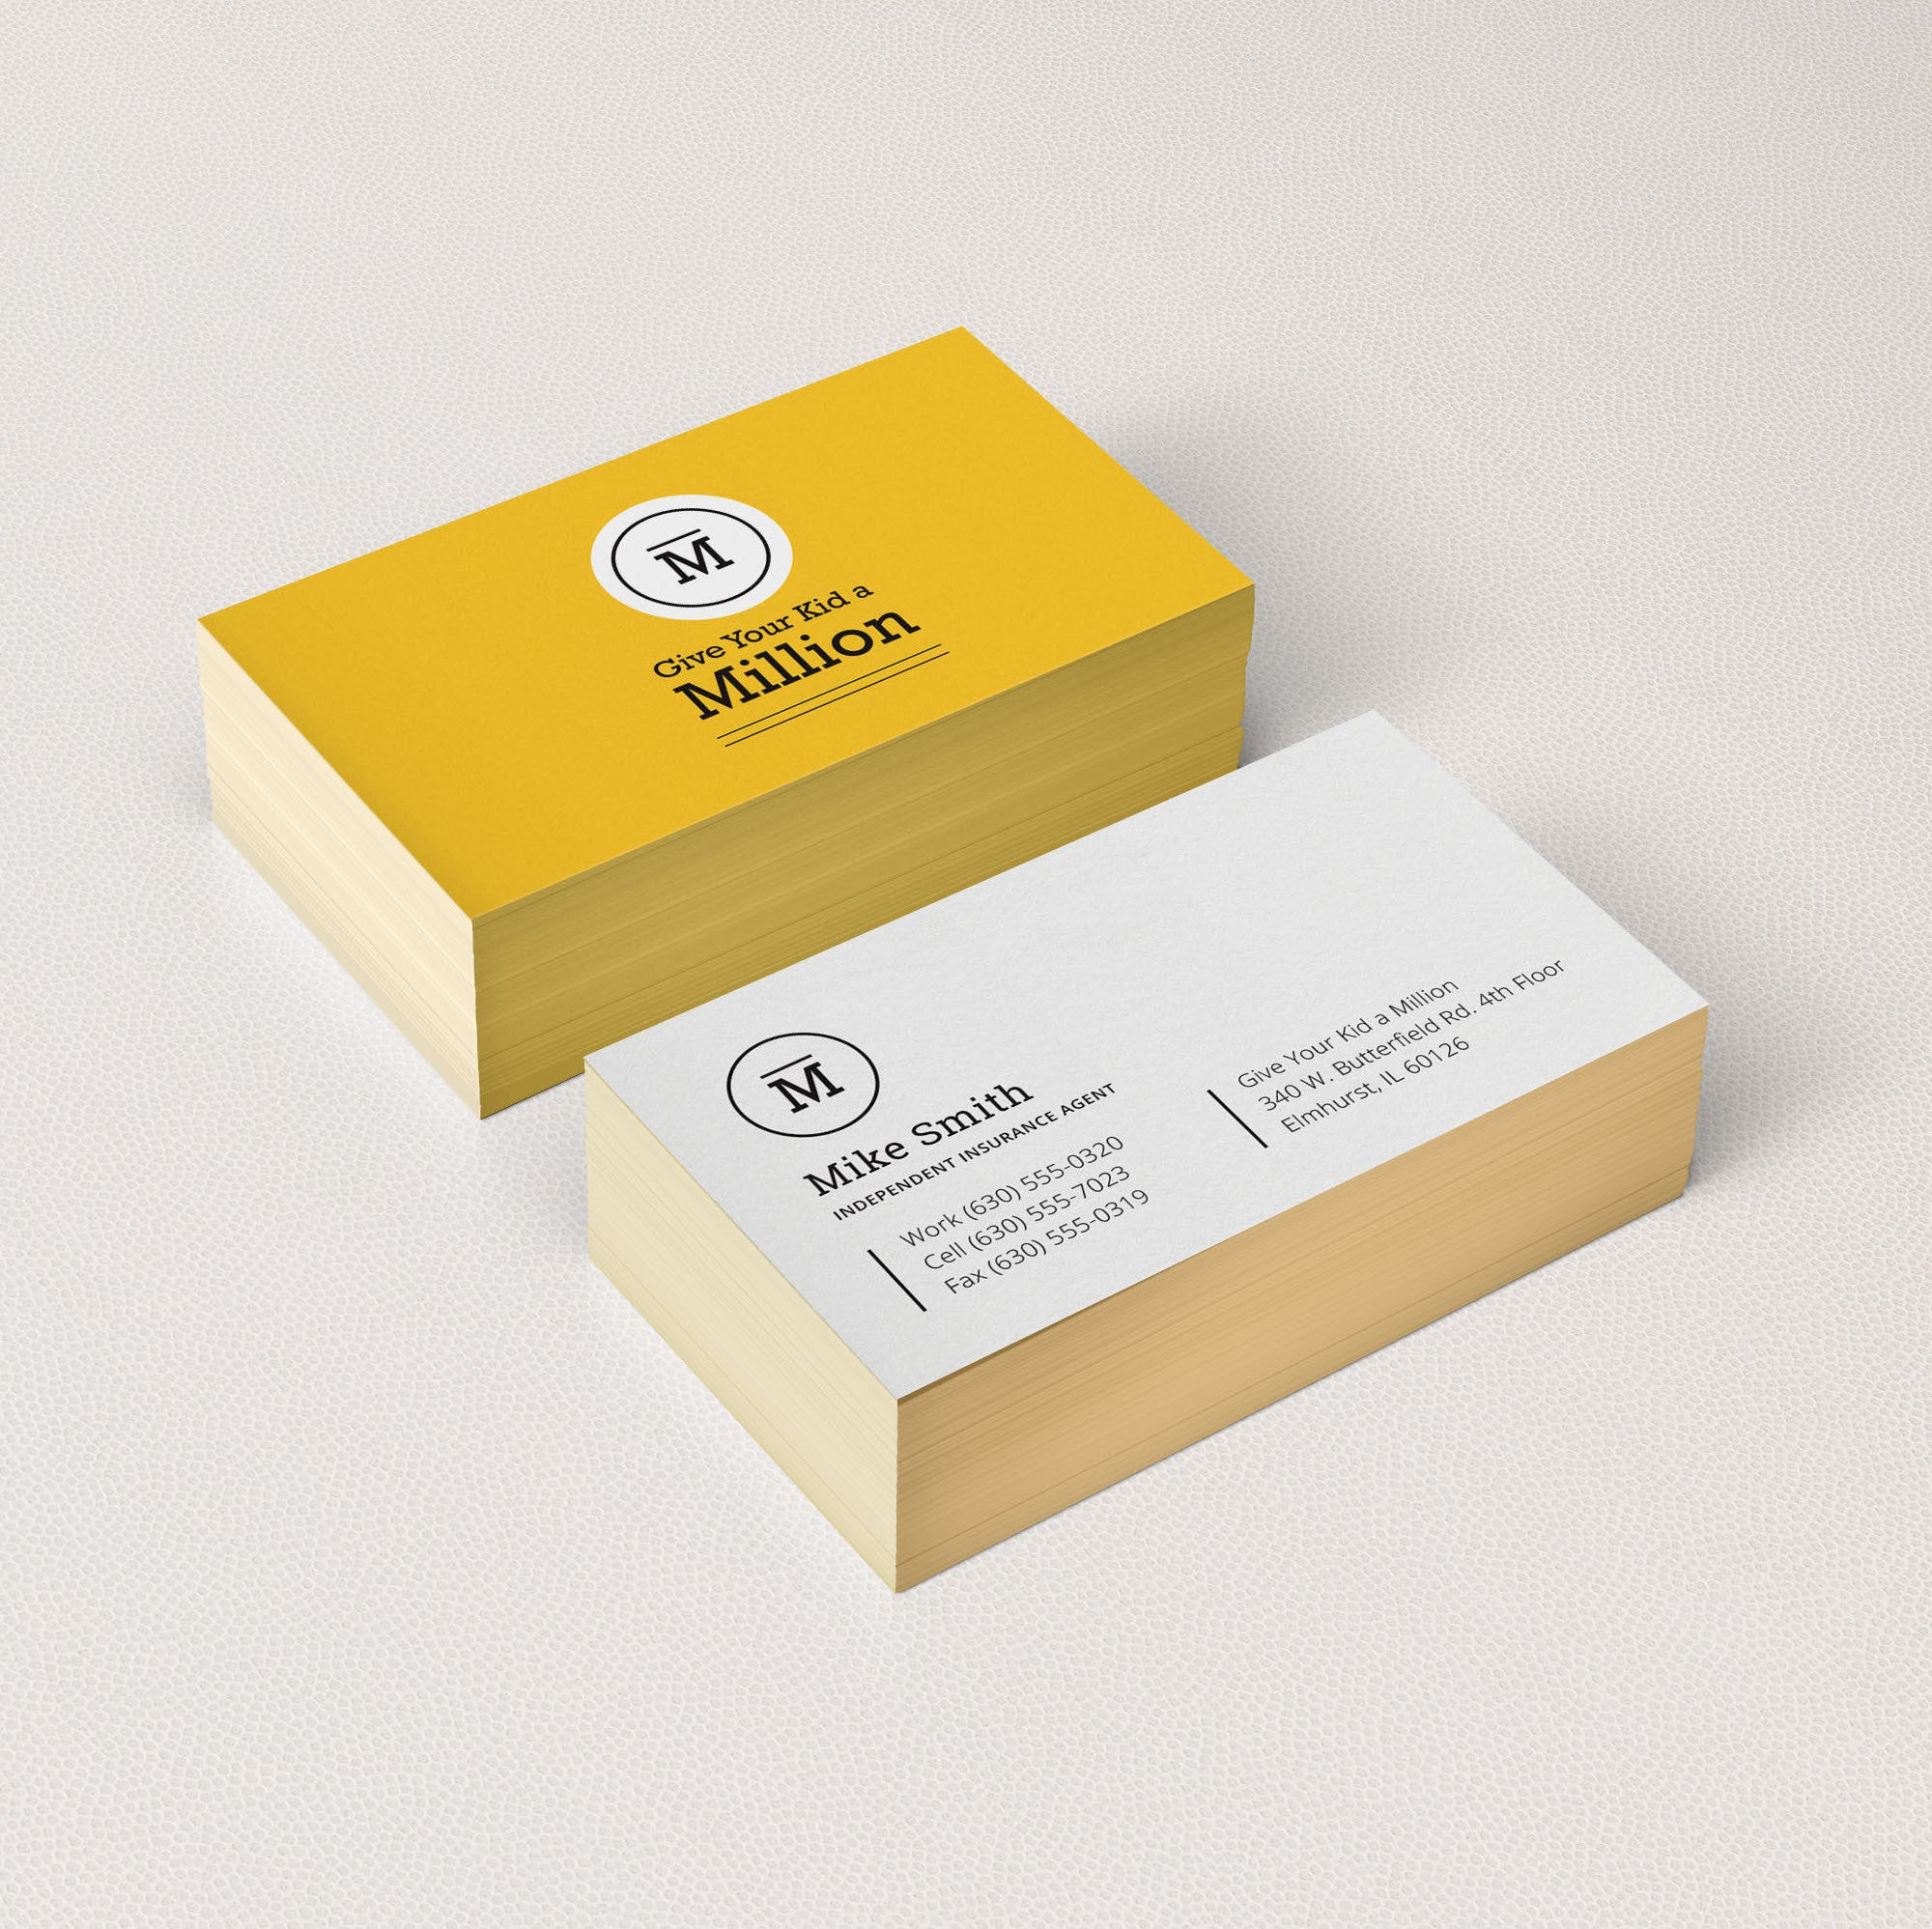 Business-card-whiteandyellow.jpg?v=1426123711